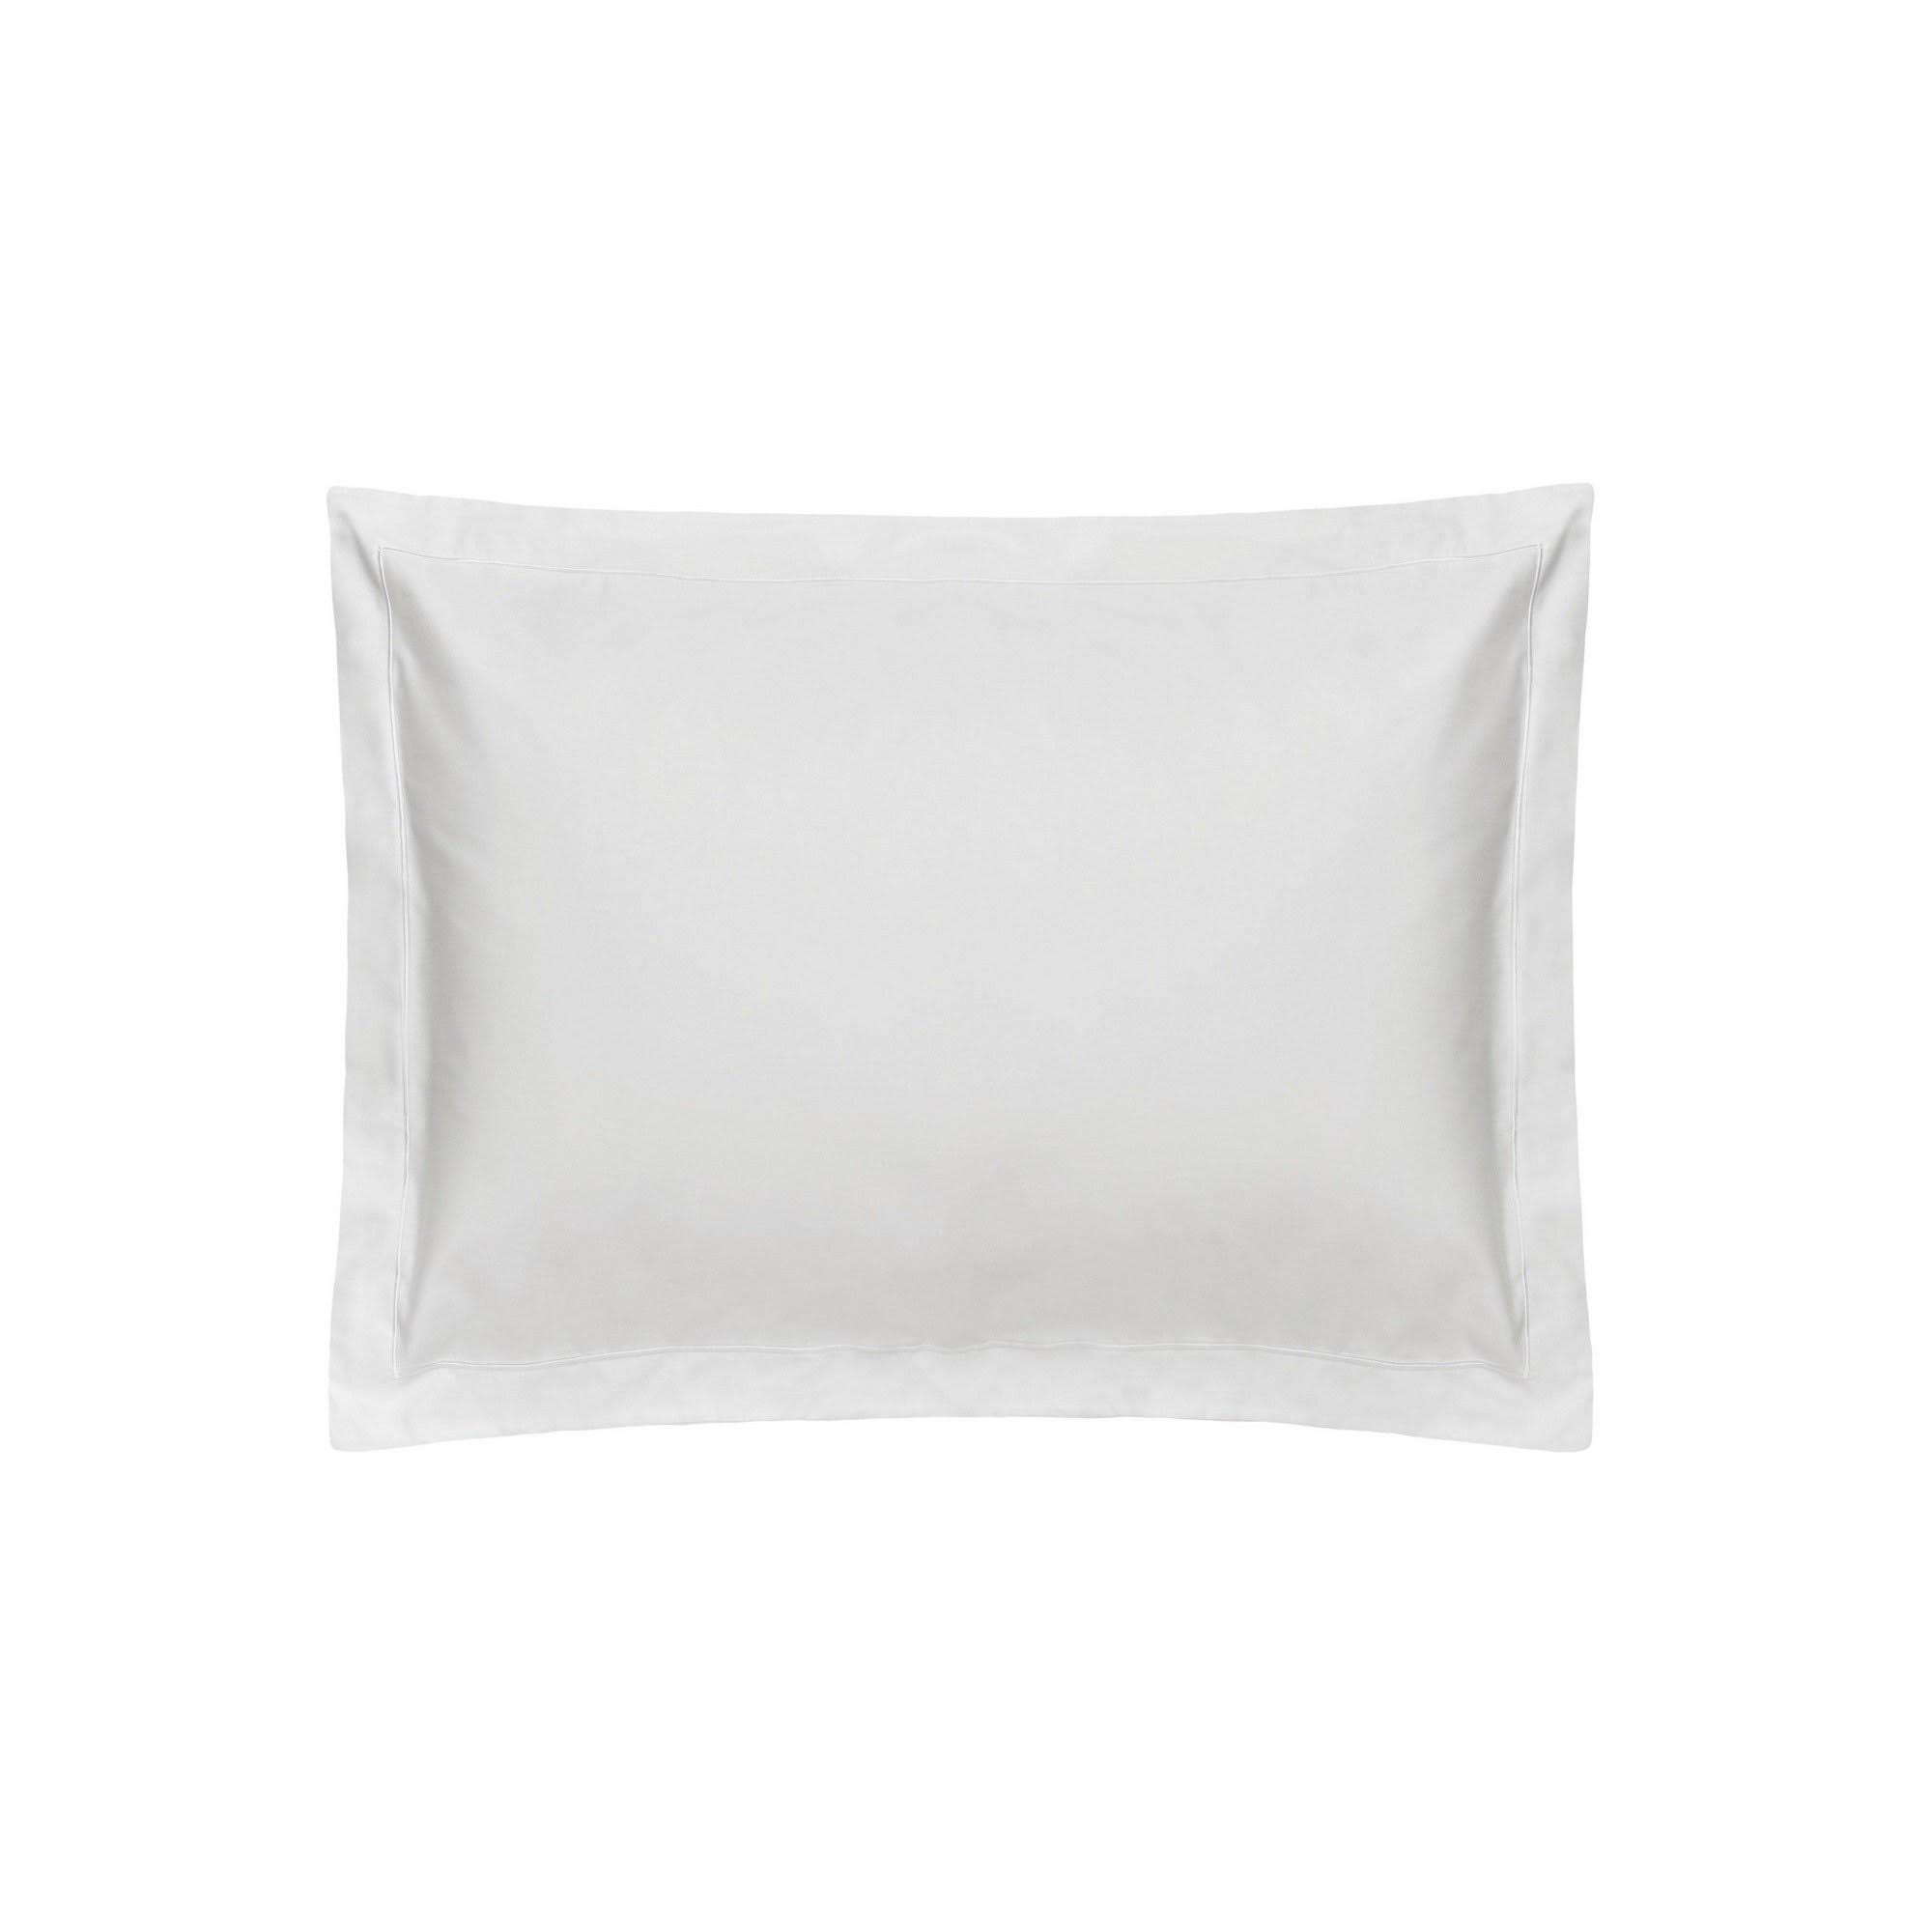 Belledorm 400 Thread Count Egyptian Cotton Large Oxford Pillowcase Ivory